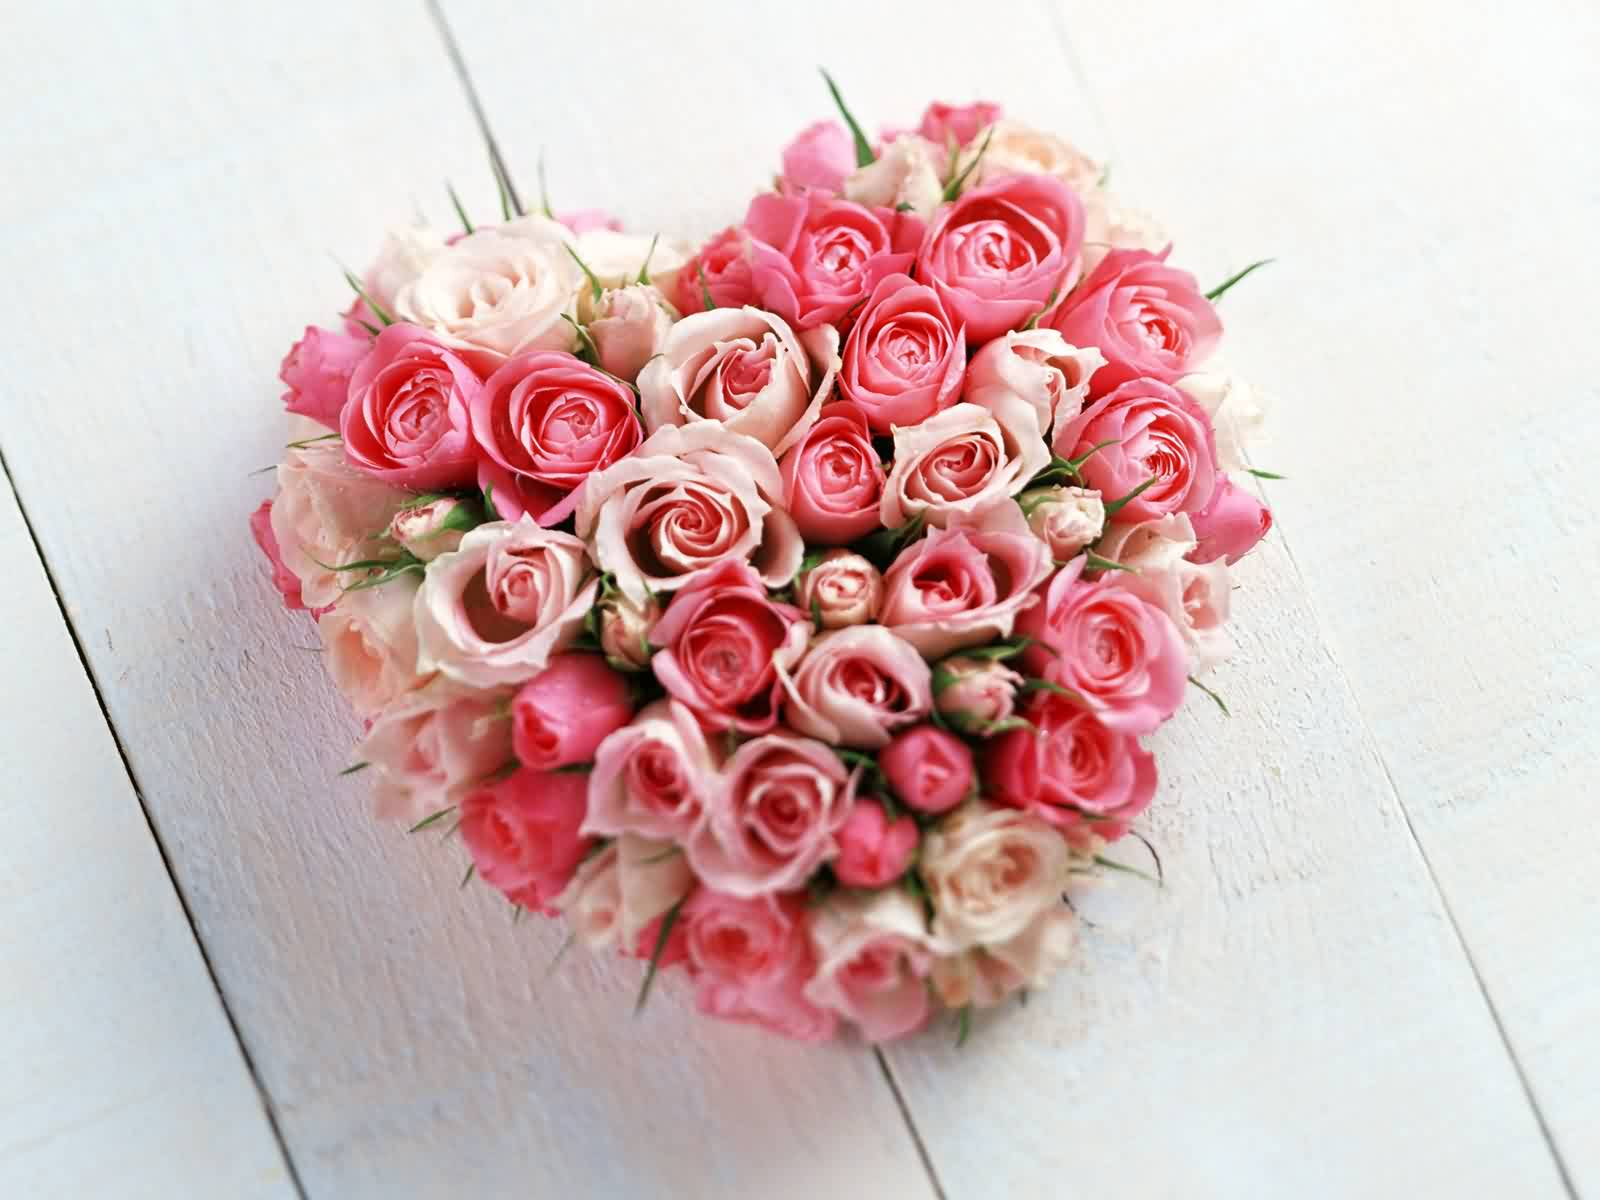 Love Flowers | Flickr - Photo Sharing!